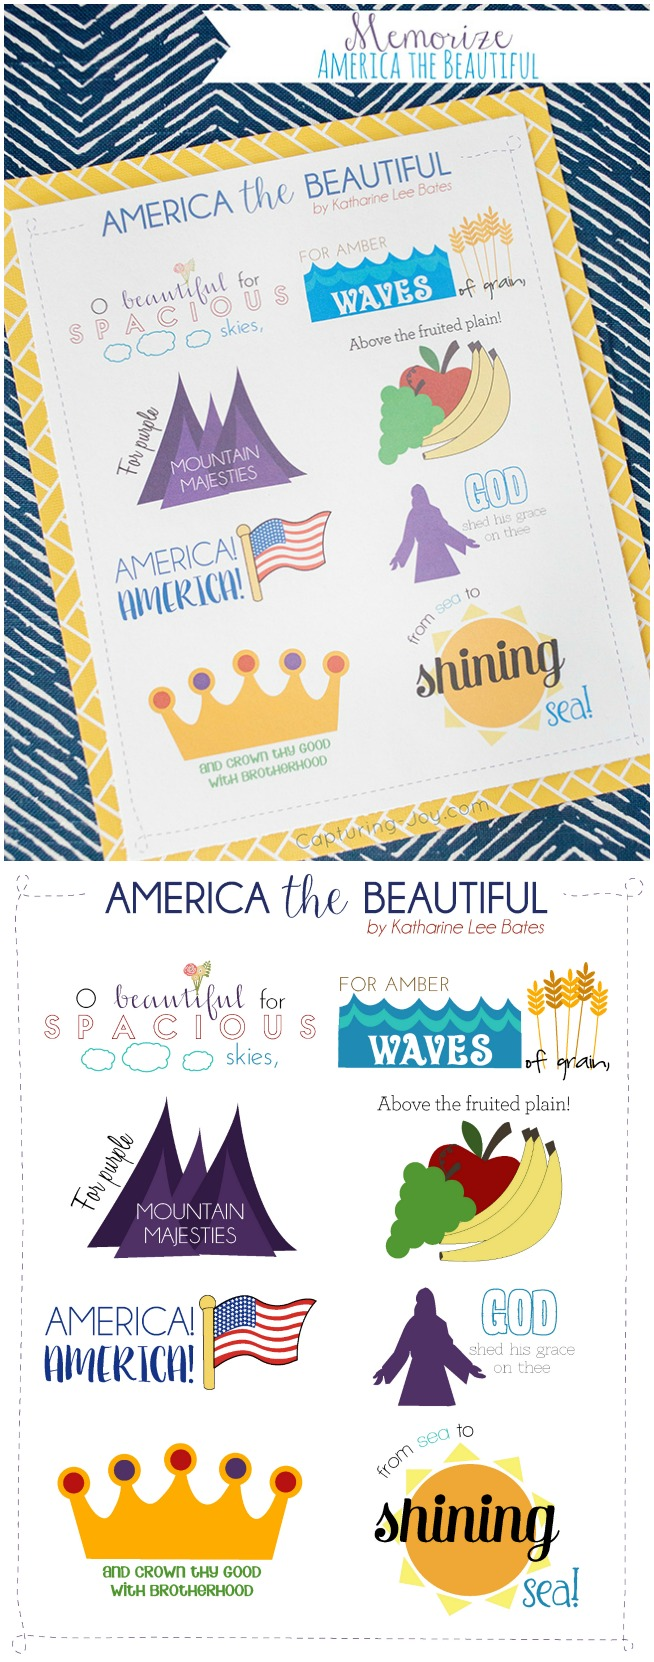 July 4th song America the Beautiful memorize a patriotic song